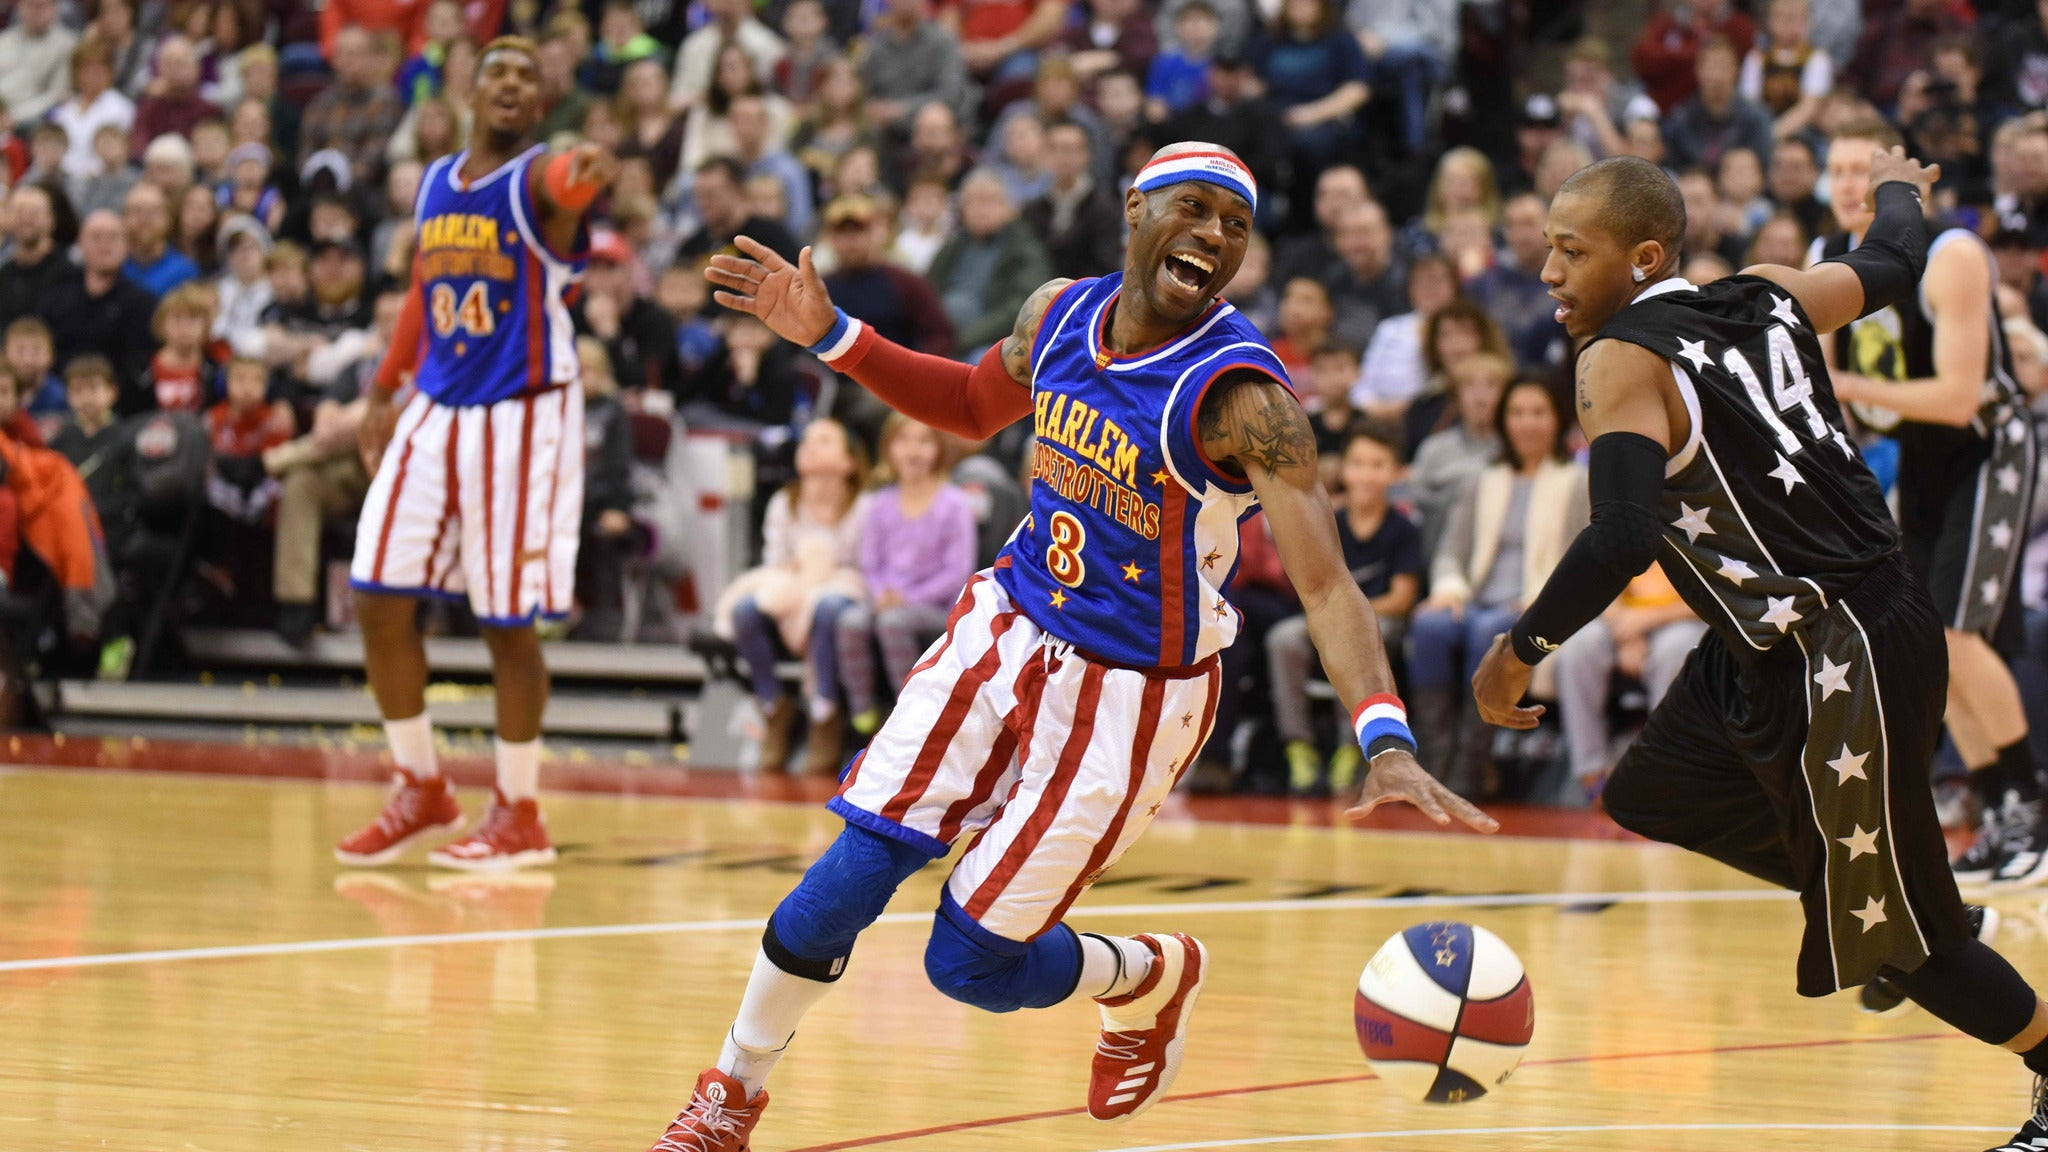 Harlem Globetrotters at 1stBank Center